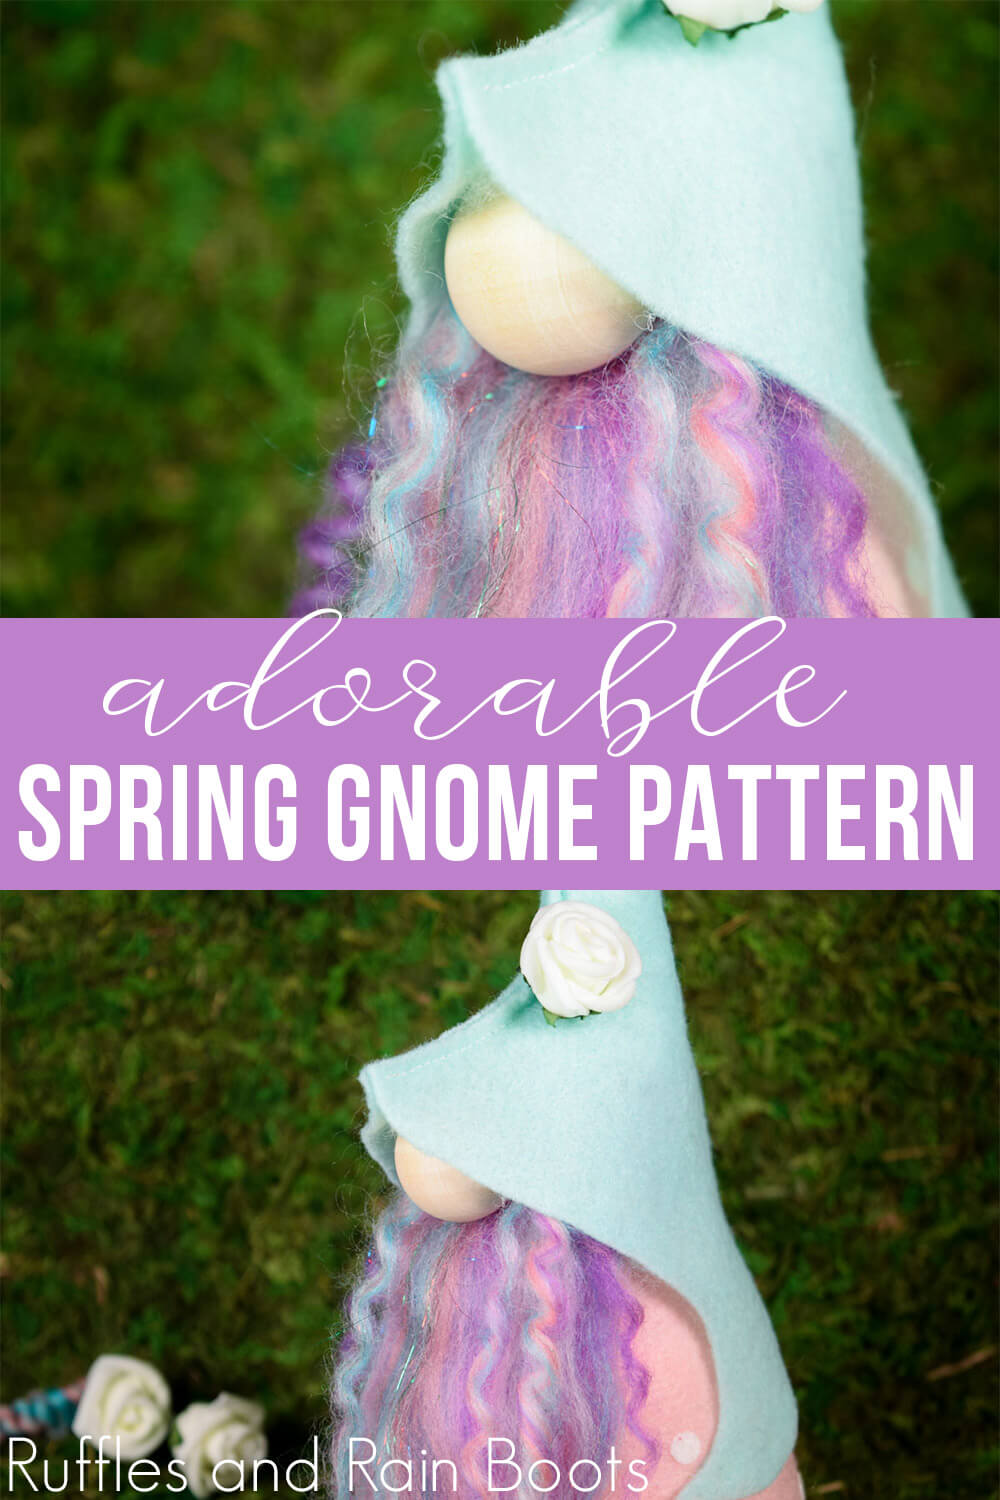 photo collage of elfin gnome pattern with text which reads adorable spring gnome pattern